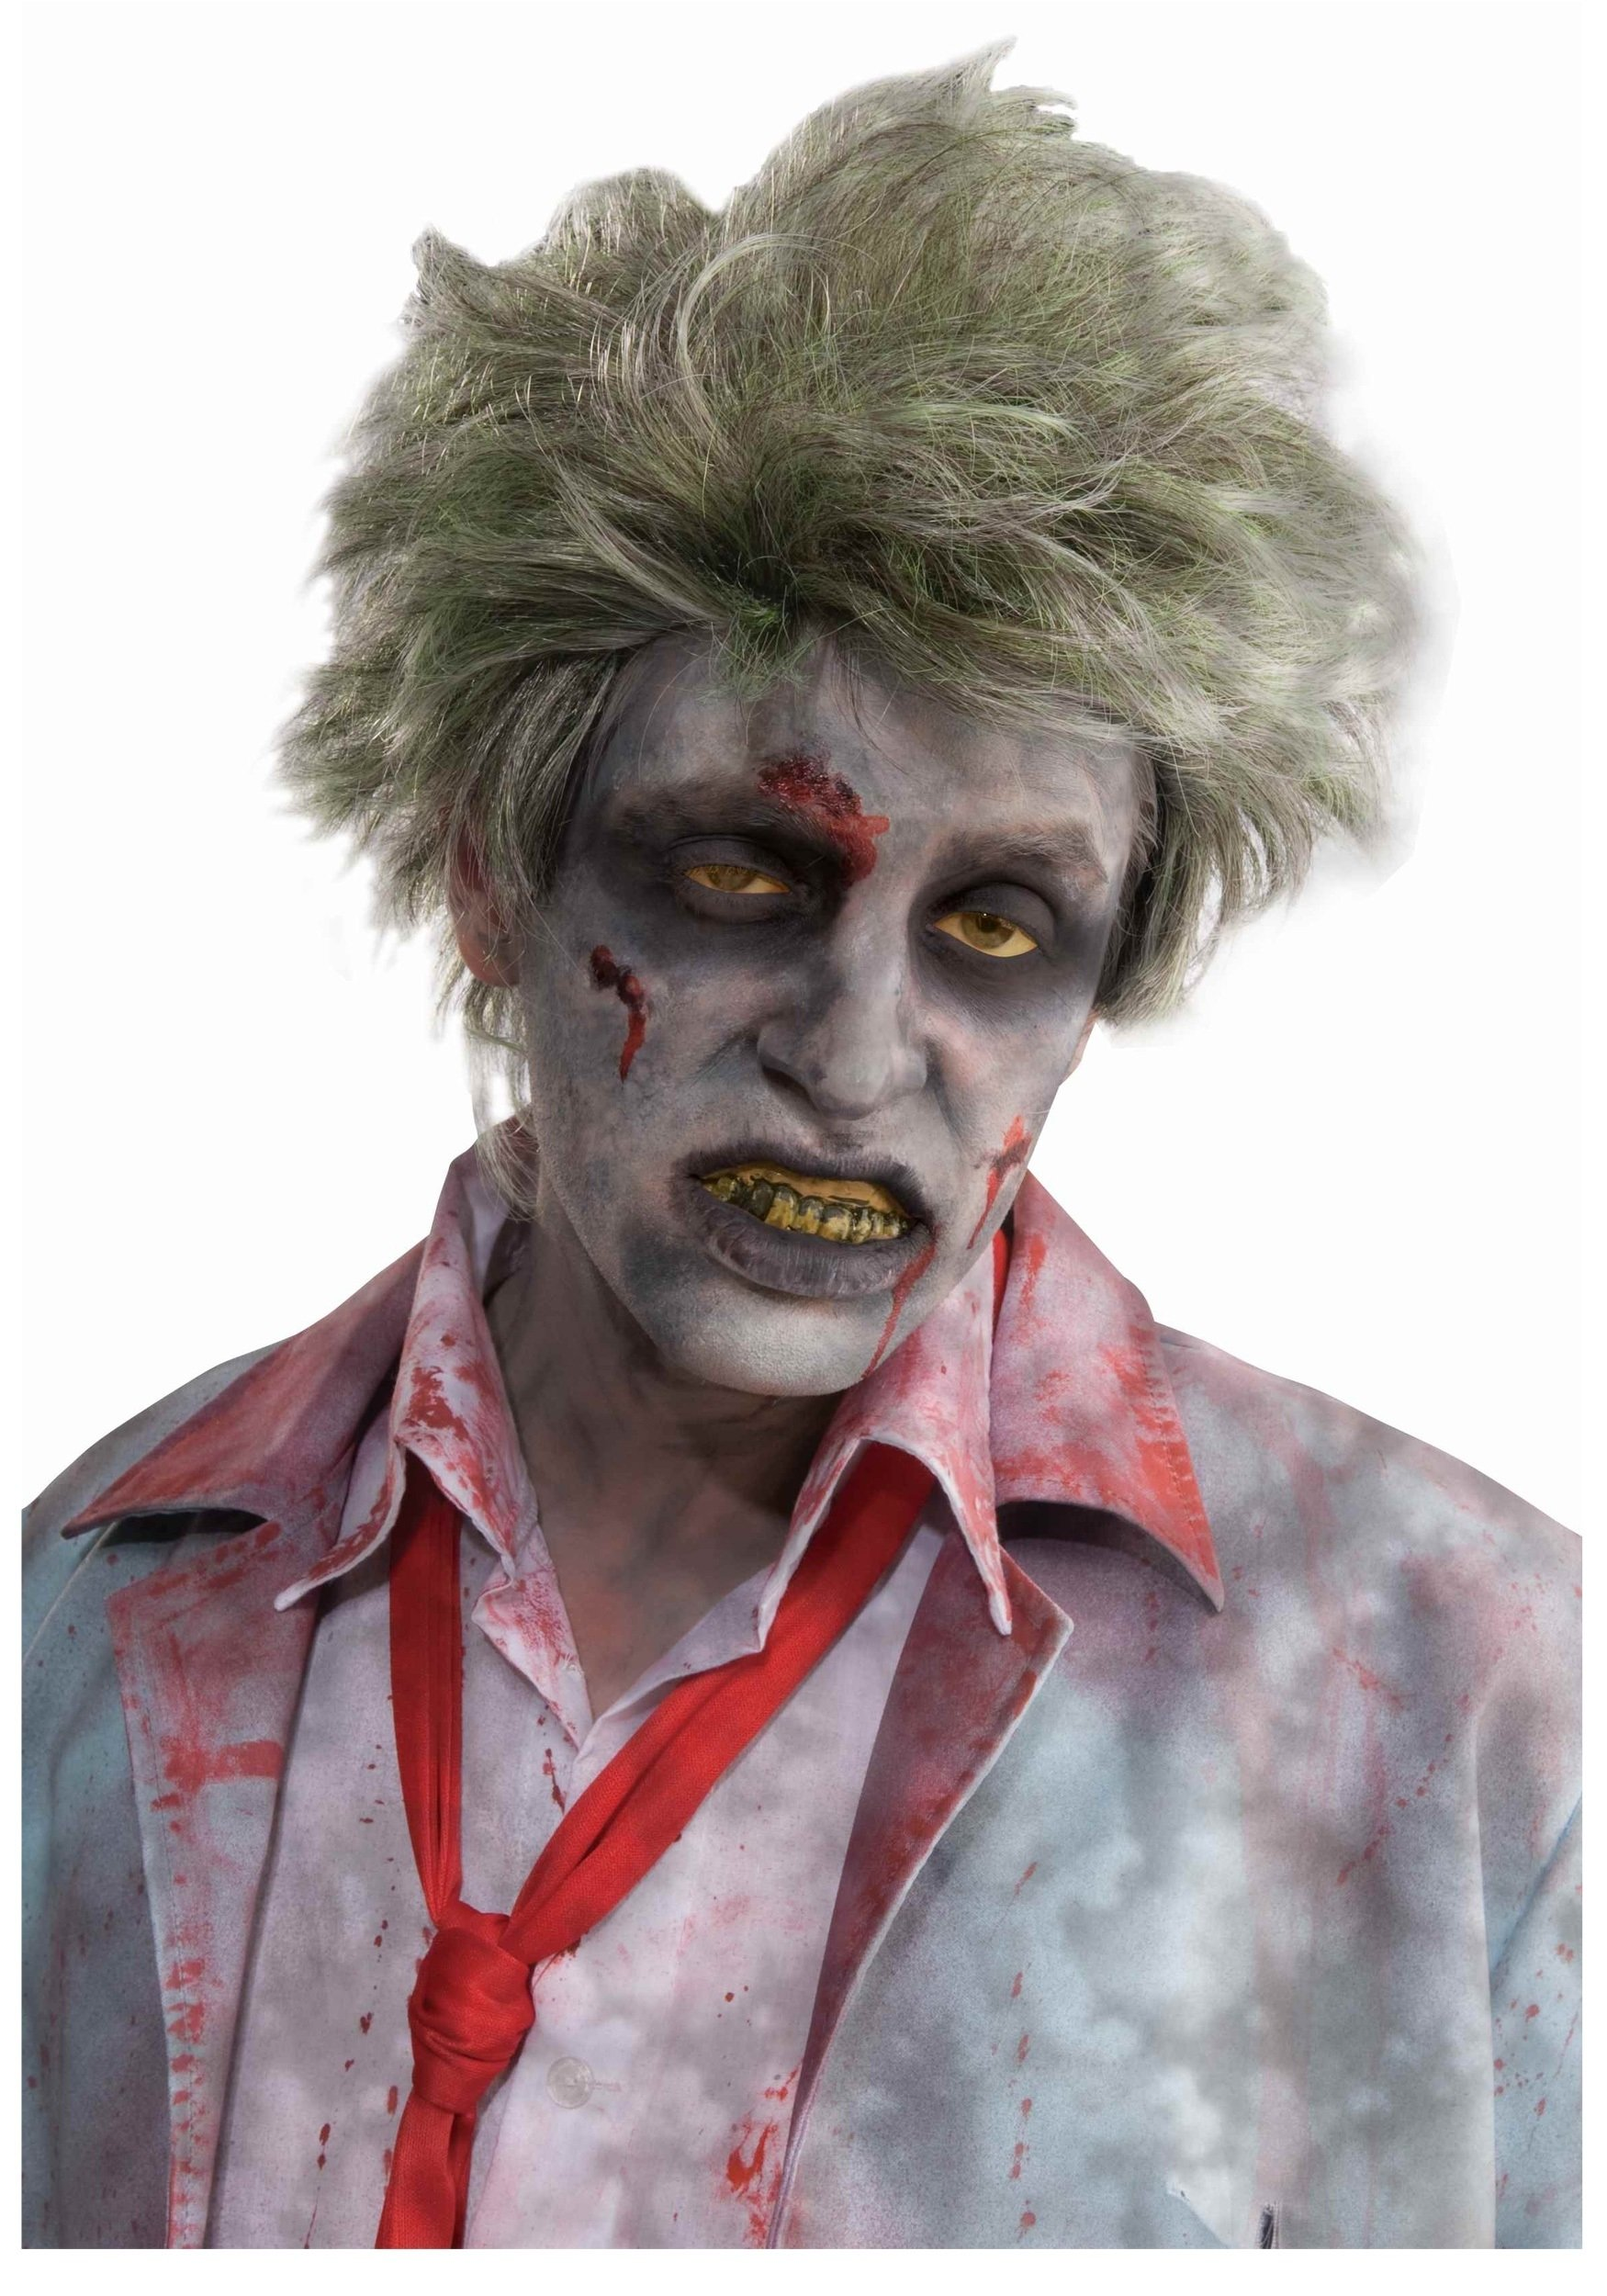 10 Fashionable Zombie Costume Ideas For Men graveyard zombie wig scary zombie costume accessory 2020